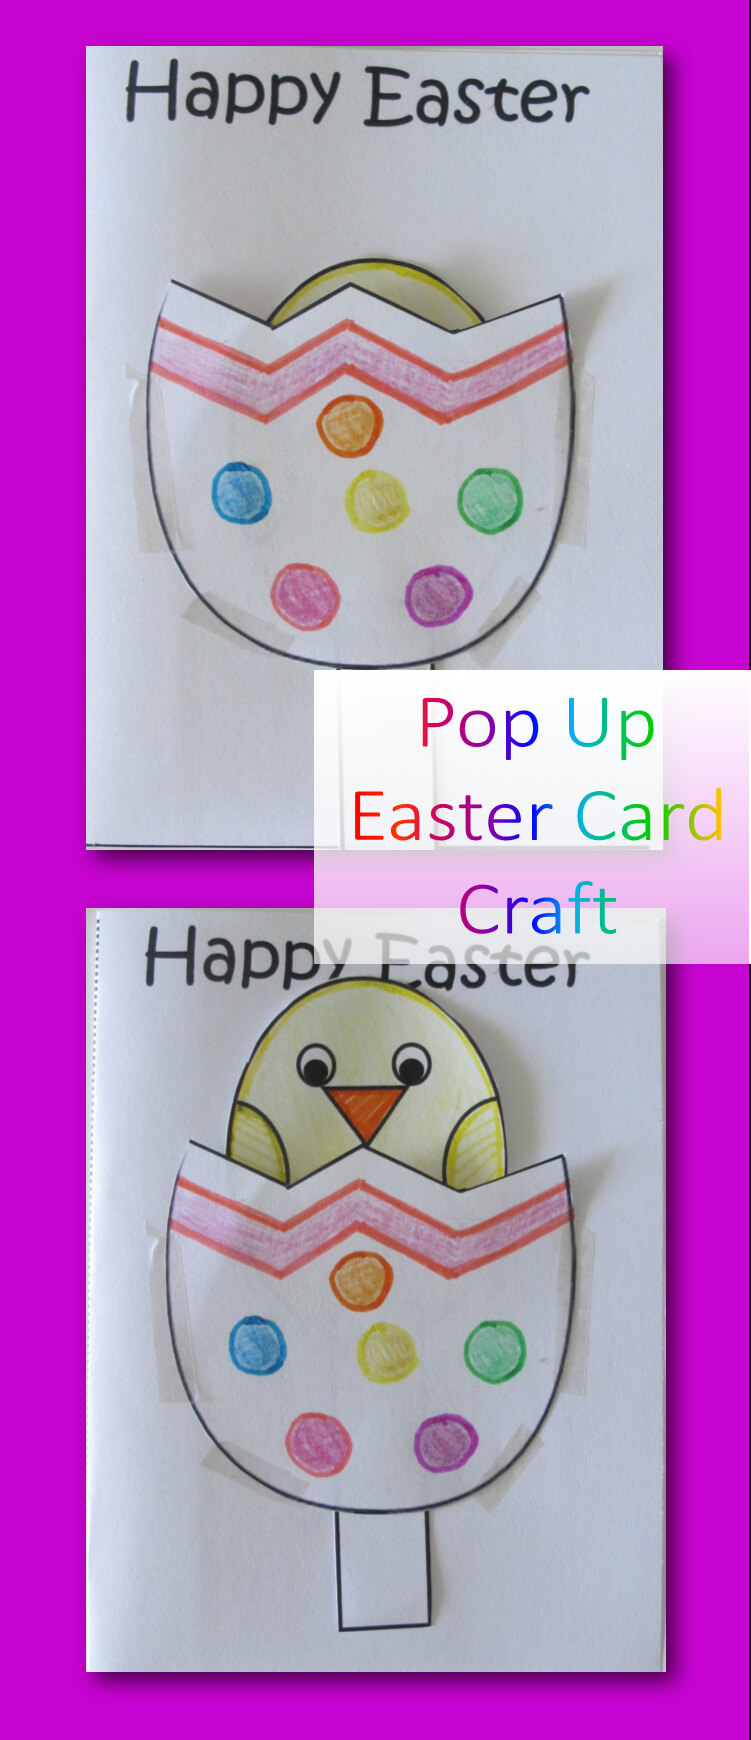 Pop Up Easter Cards Are So Cute And Really Easy To Make With Intended For Easter Card Template Ks2